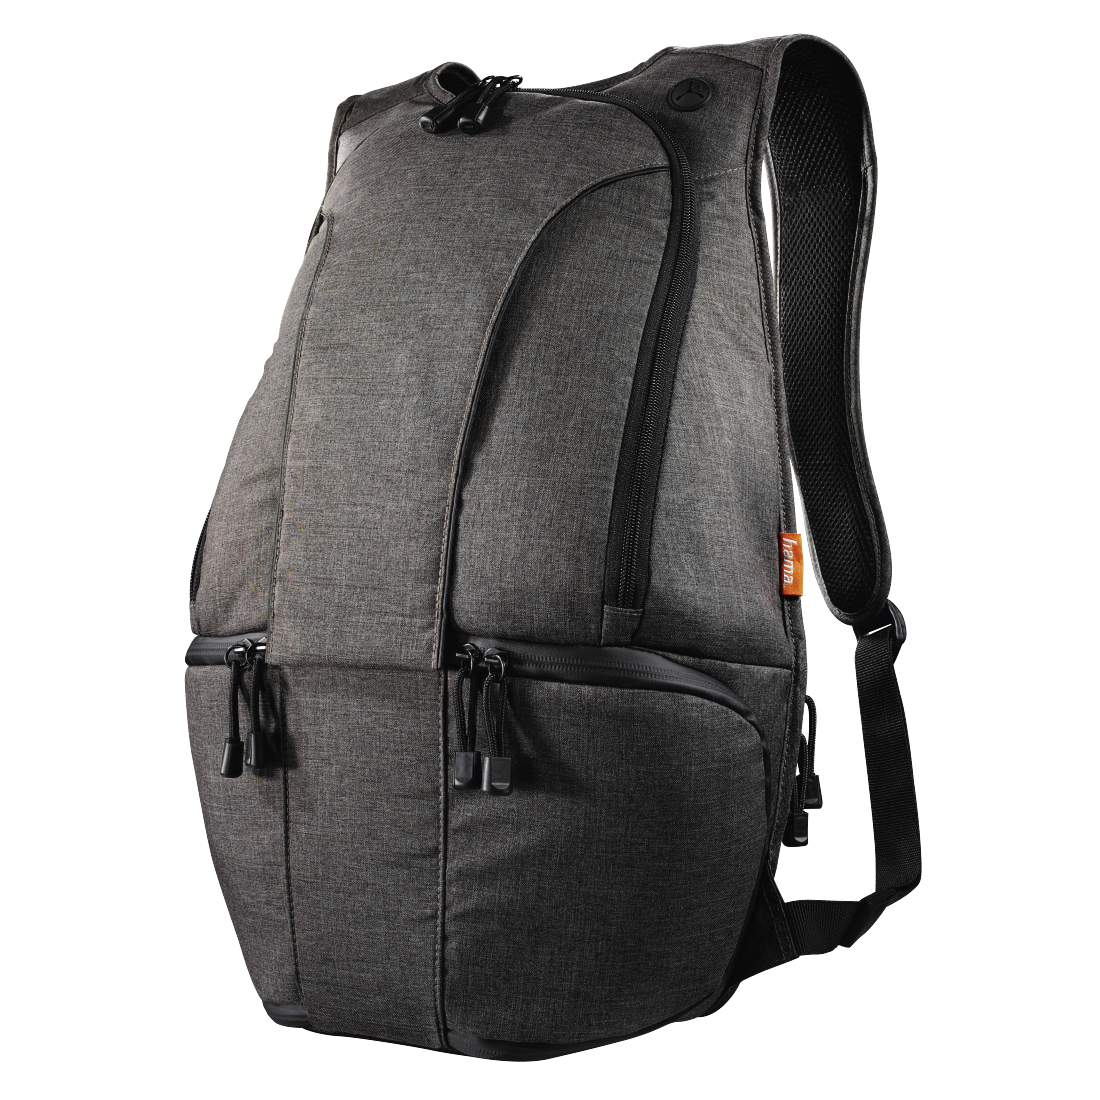 abx3 High-Res Image 3 - Hama, Lismore Camera Backpack, 170, black